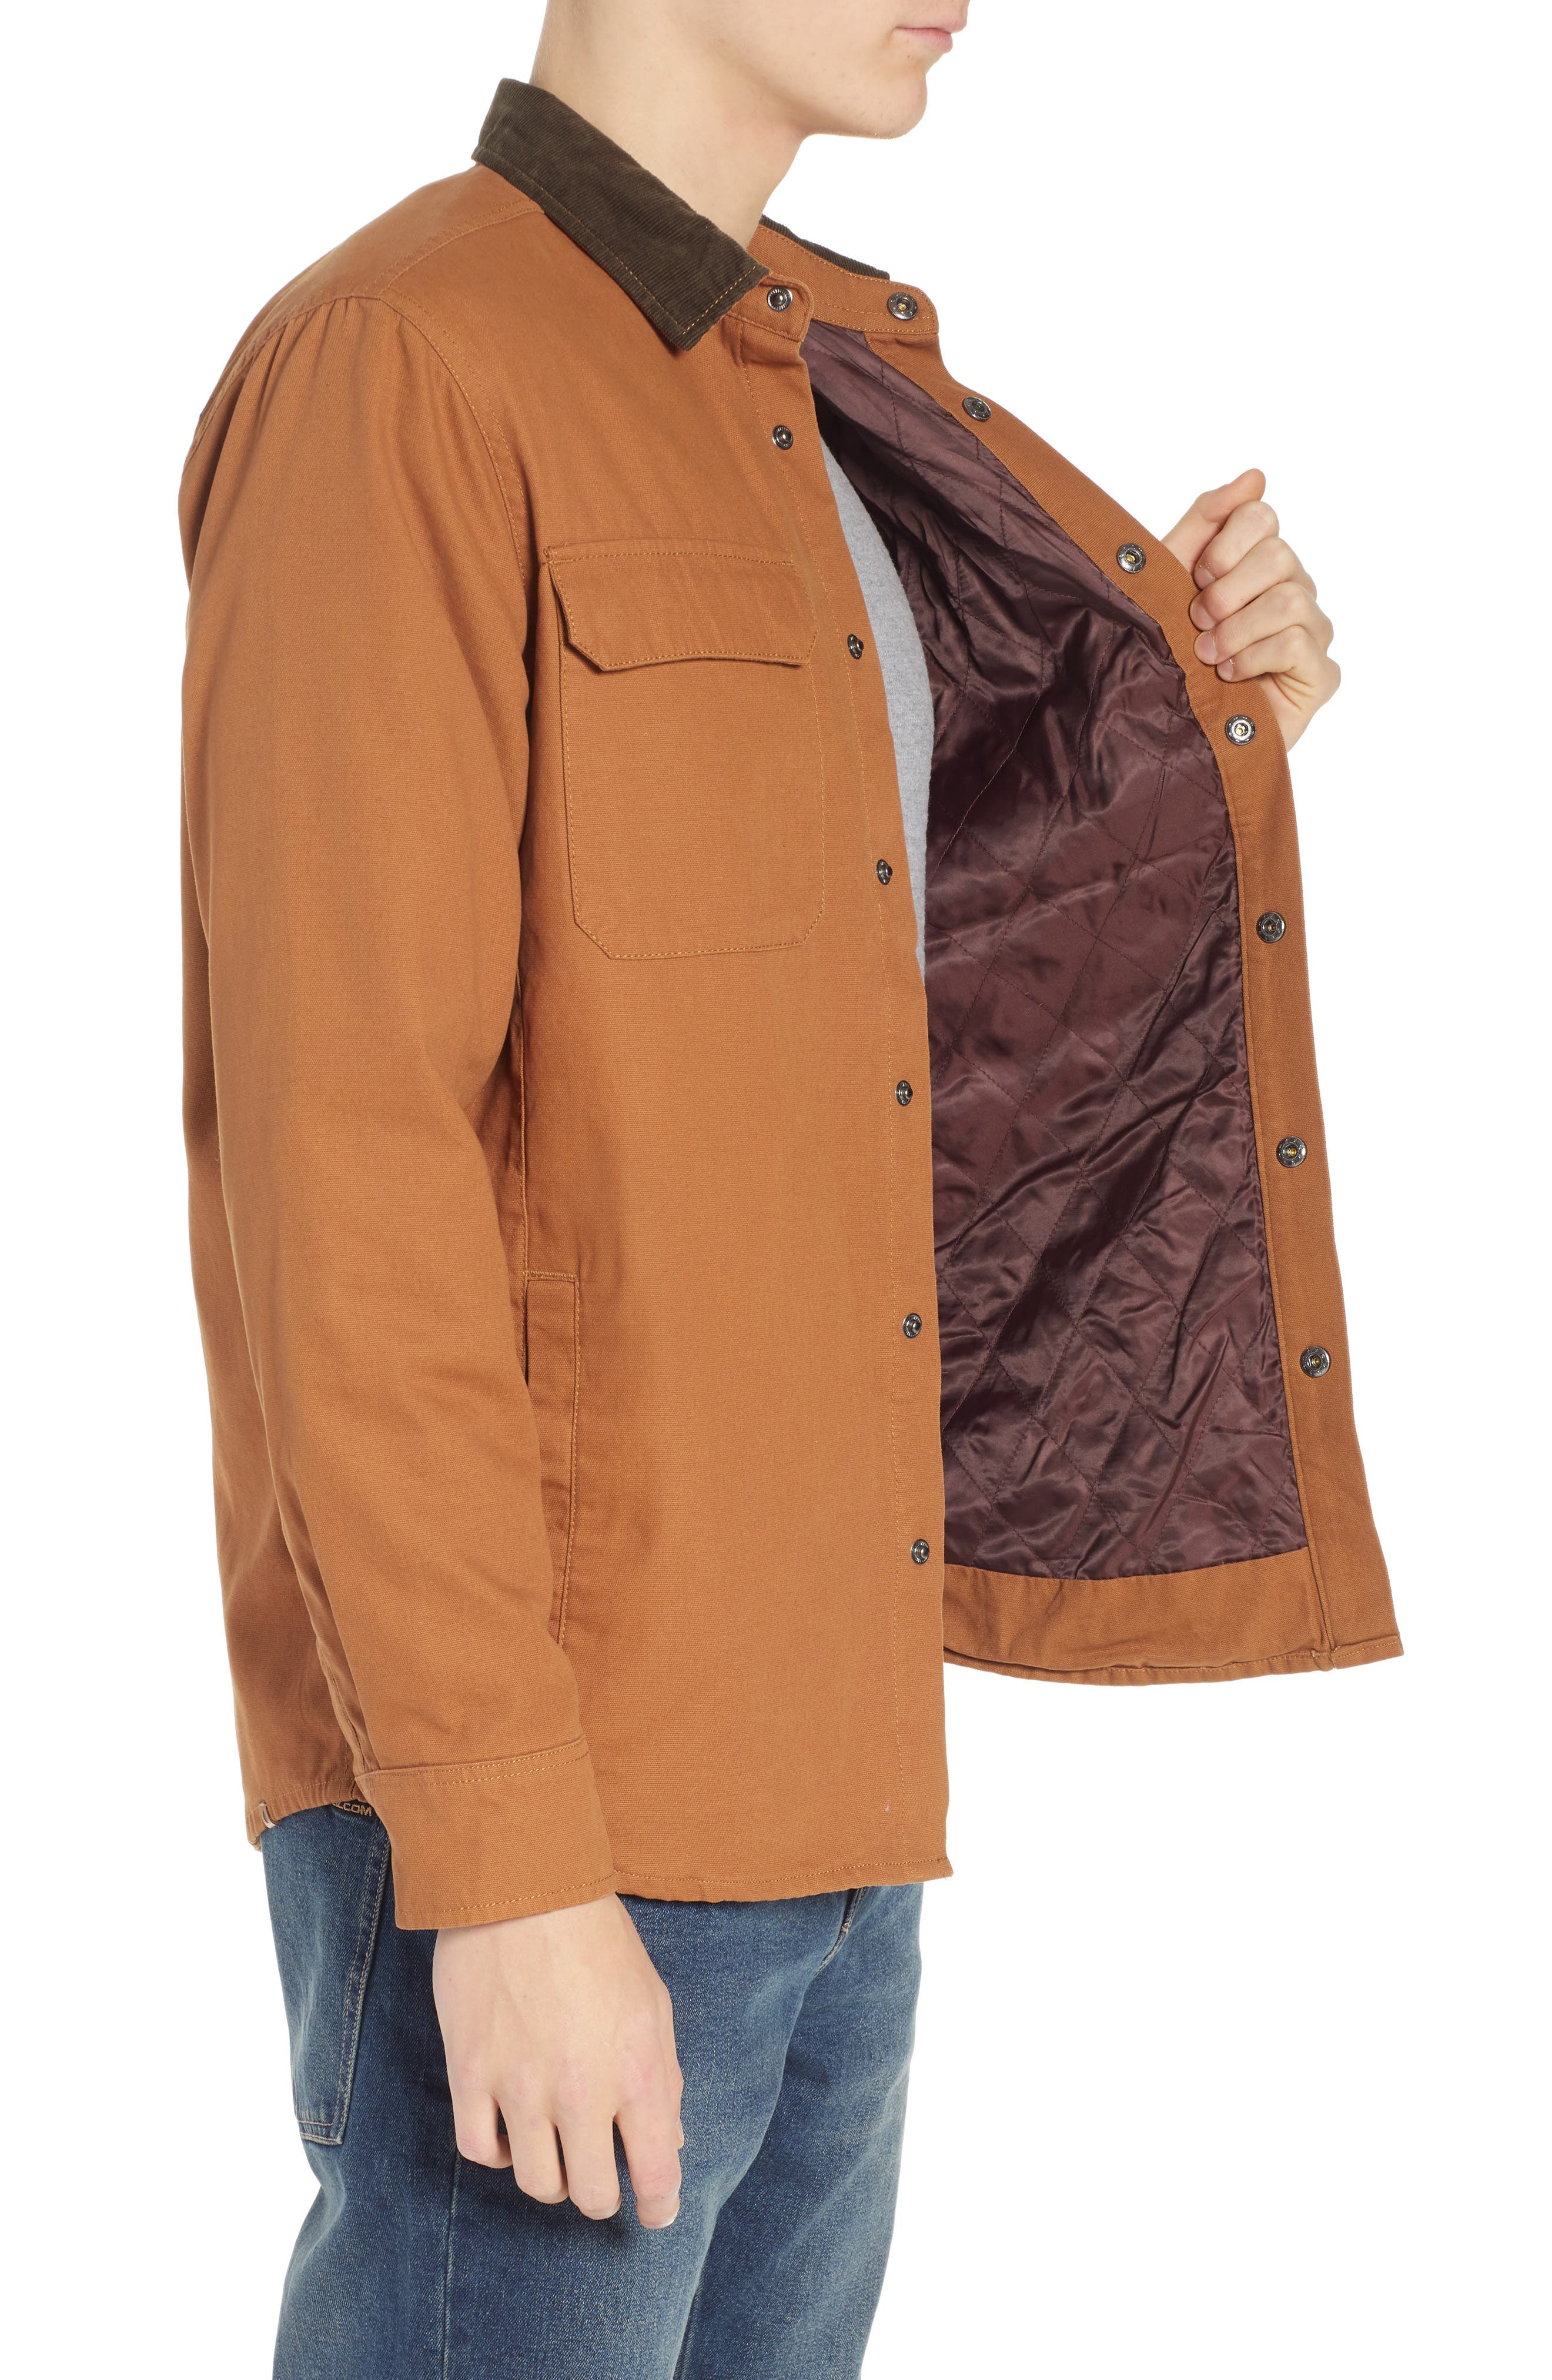 Larkin Classic Fit Jacket,                             Alternate thumbnail 3, color,                             CAMEL